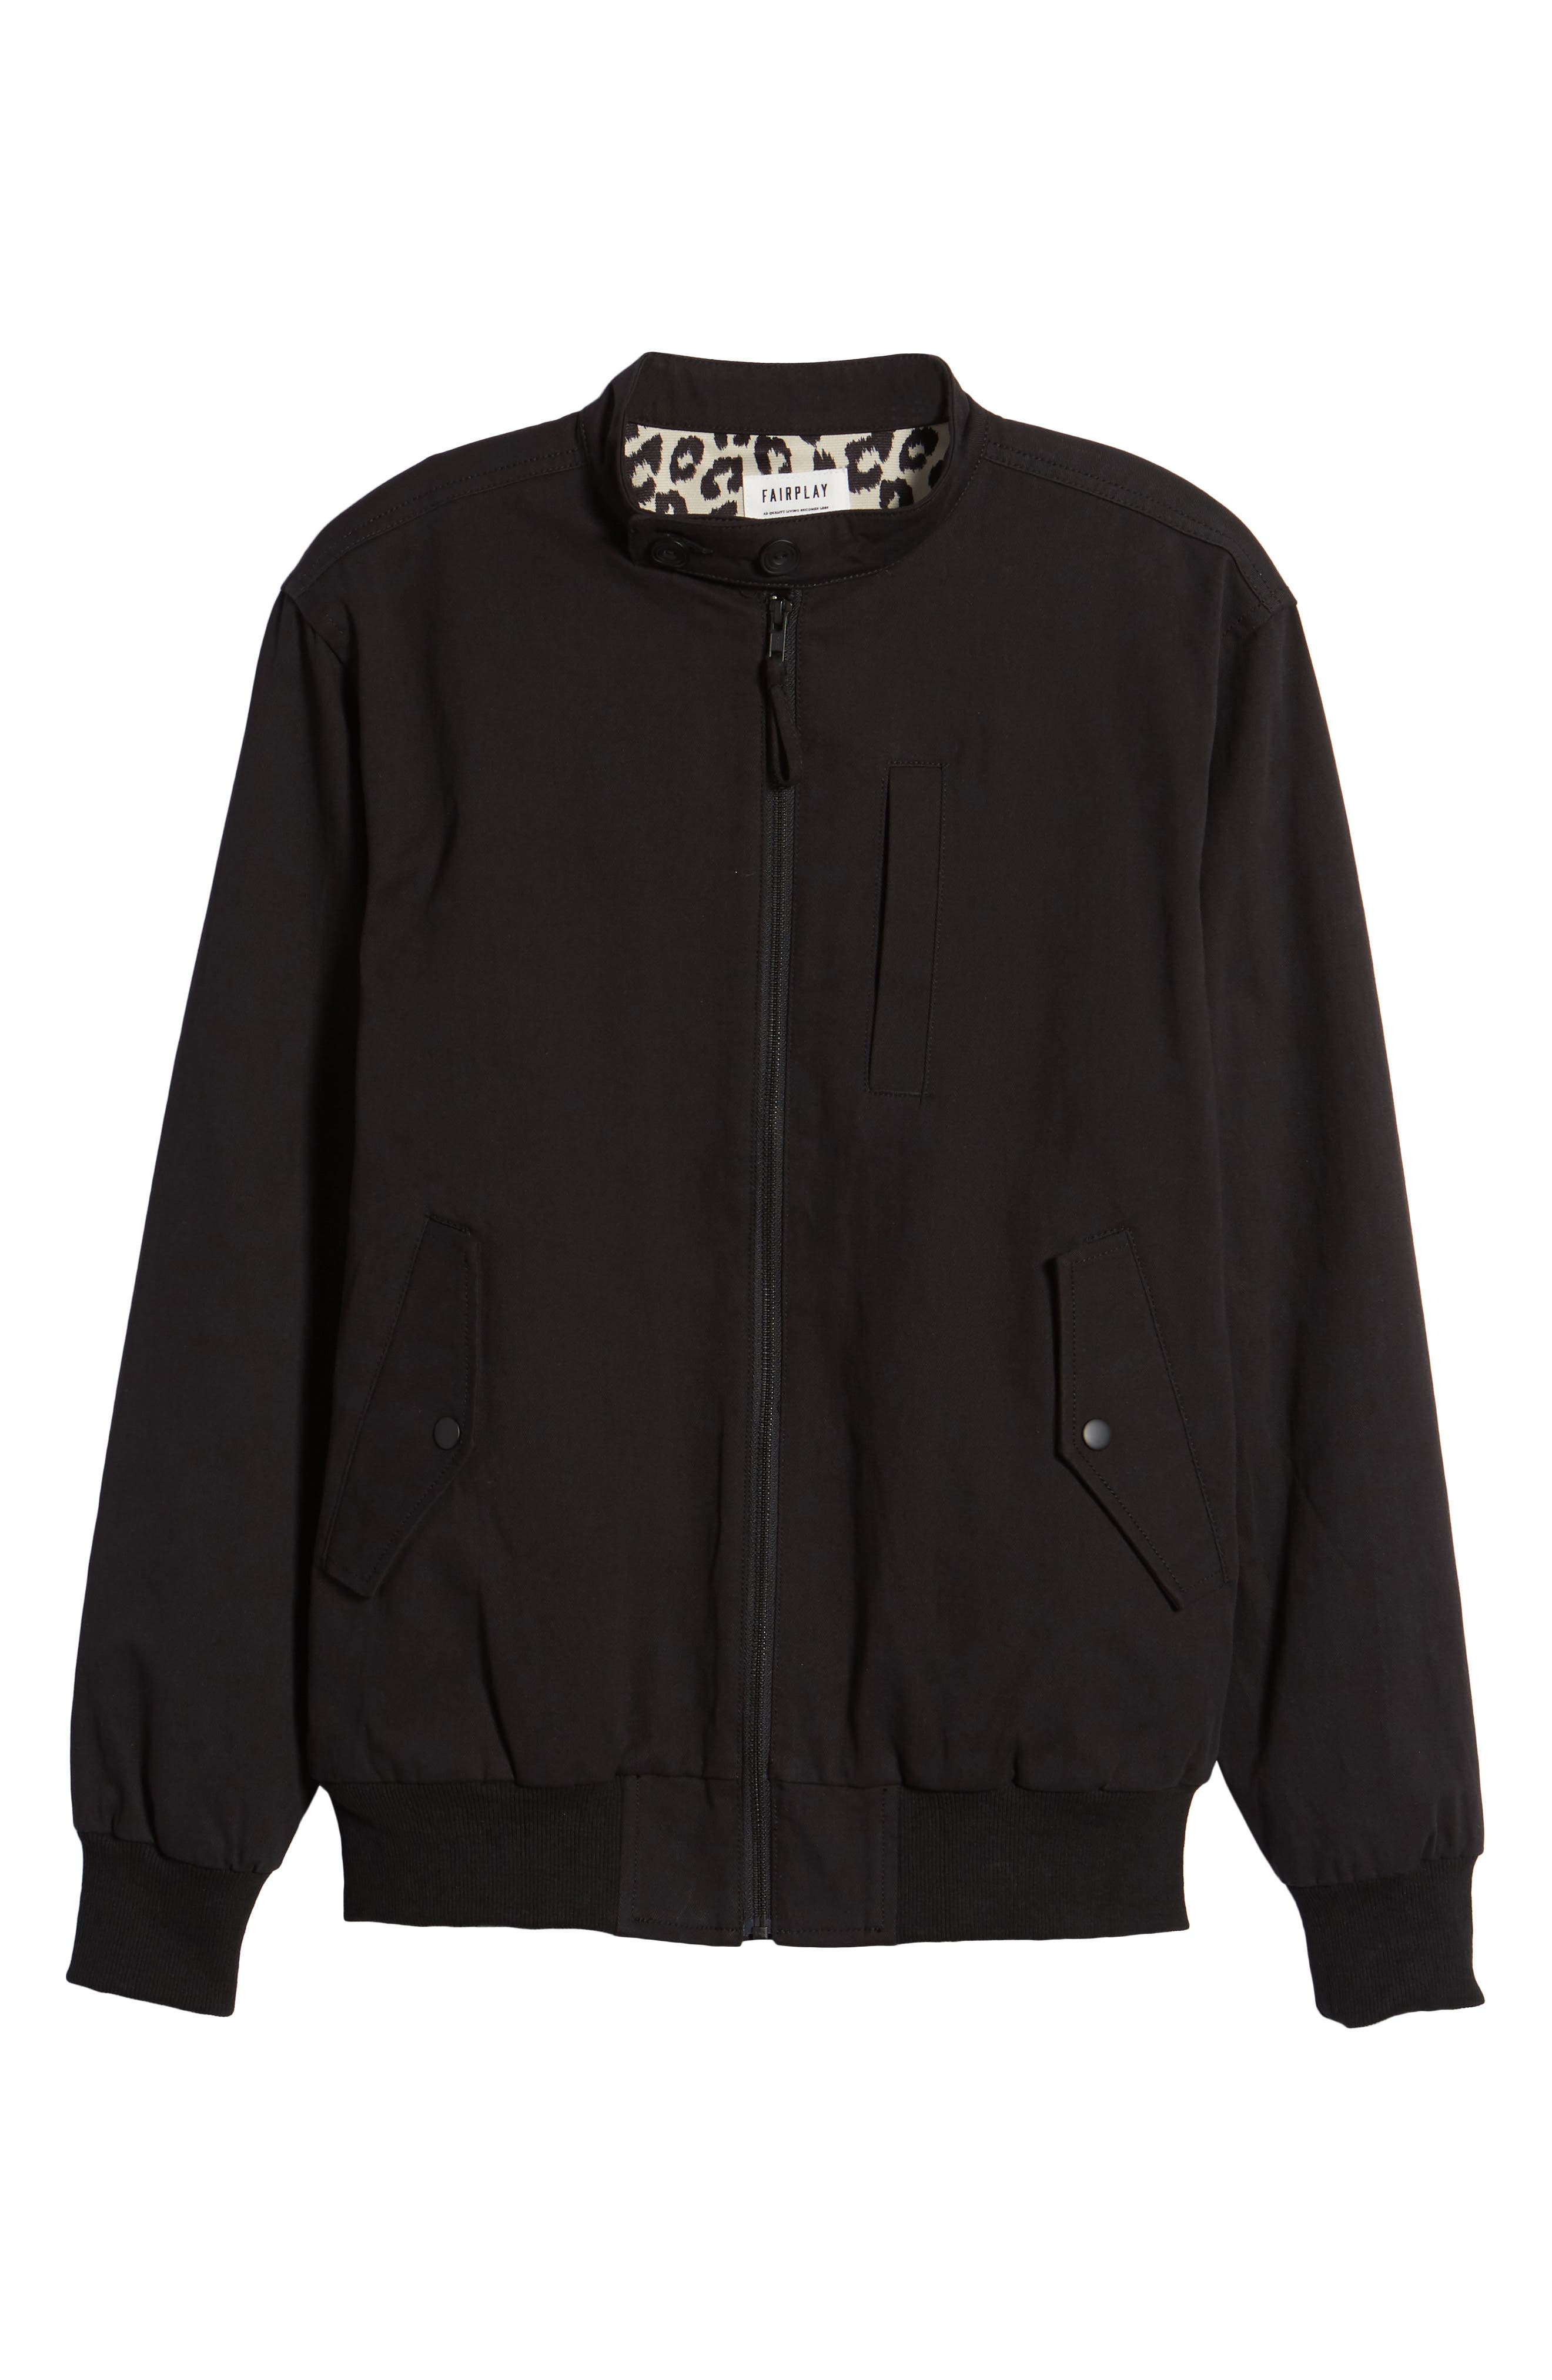 Dotson Twill Bomber Jacket,                             Alternate thumbnail 5, color,                             001